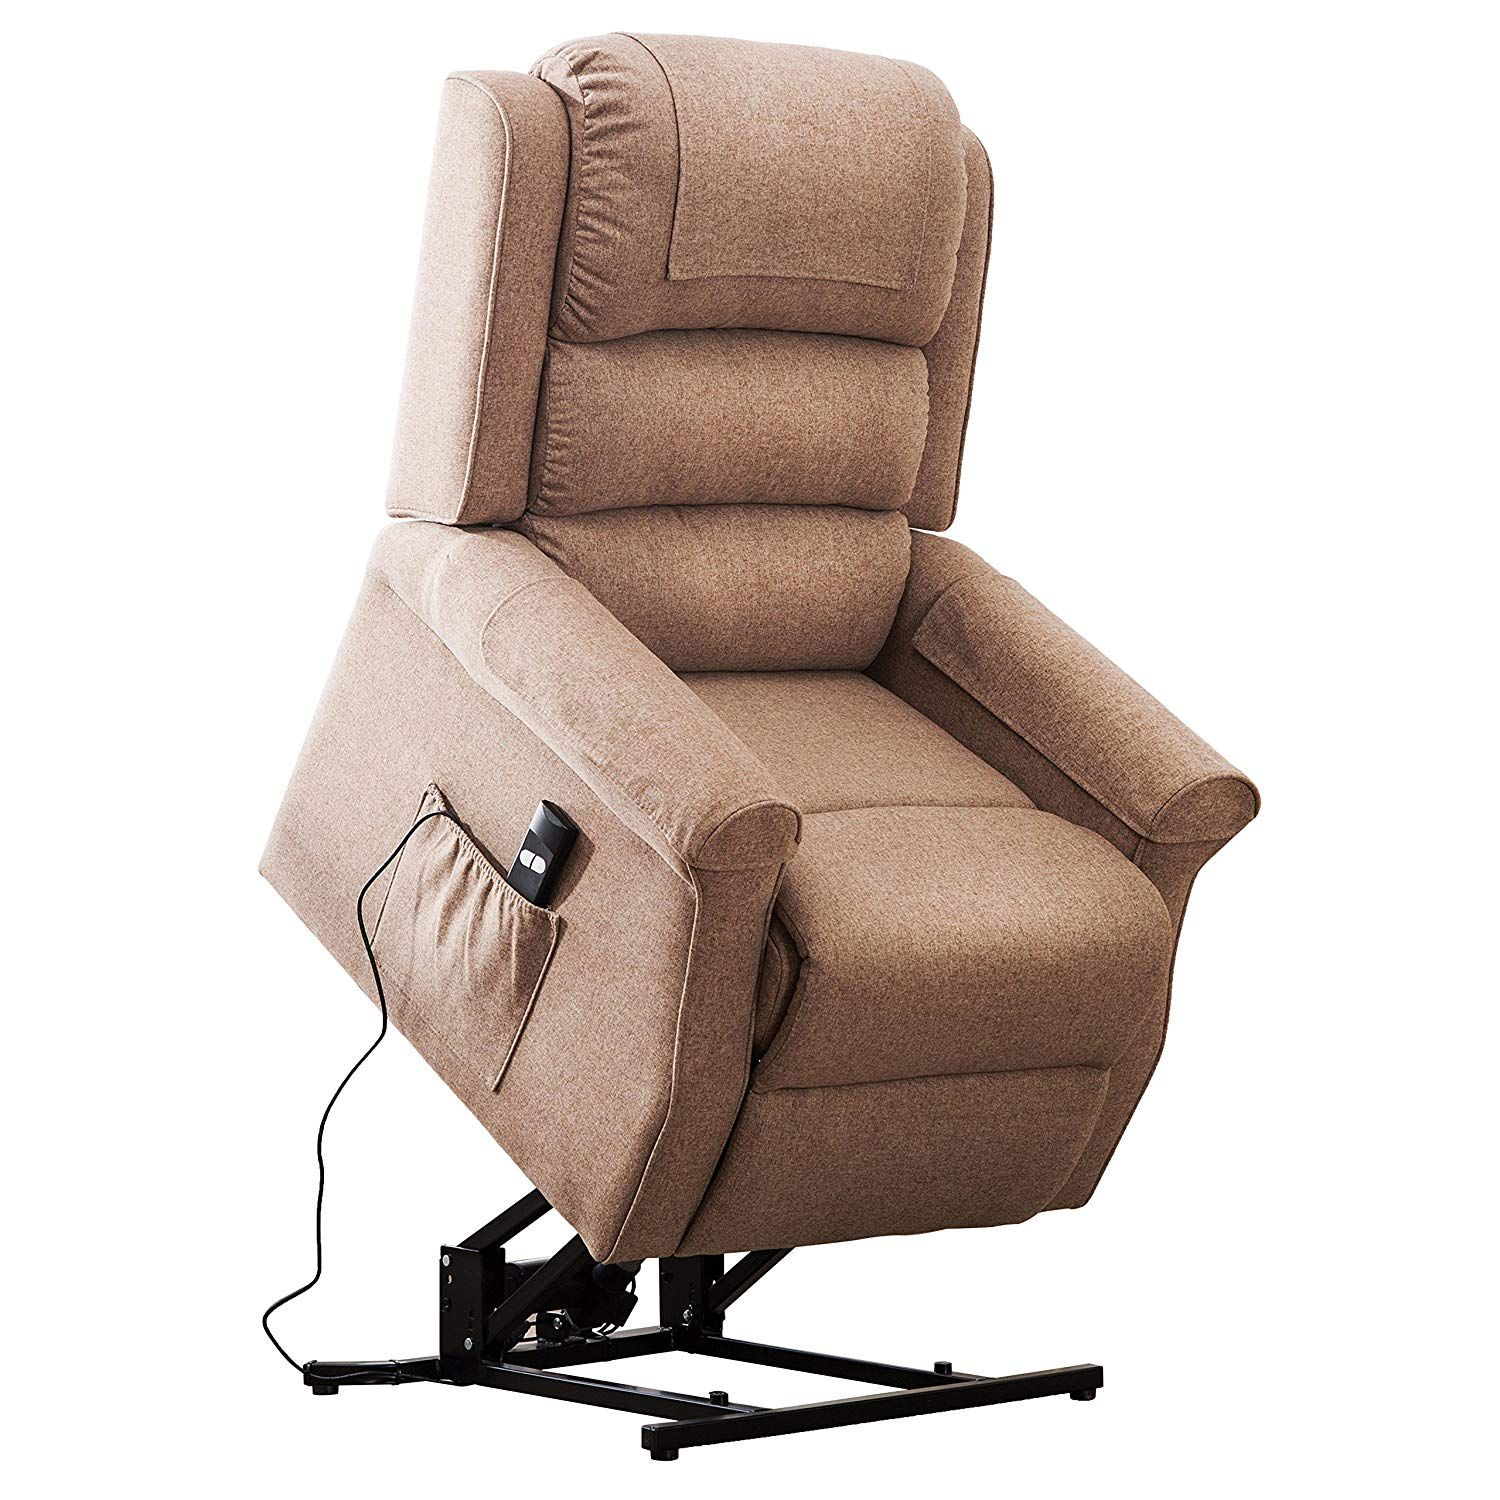 Irene House Modern Transitional Lift Chairs For Elderly Recliners